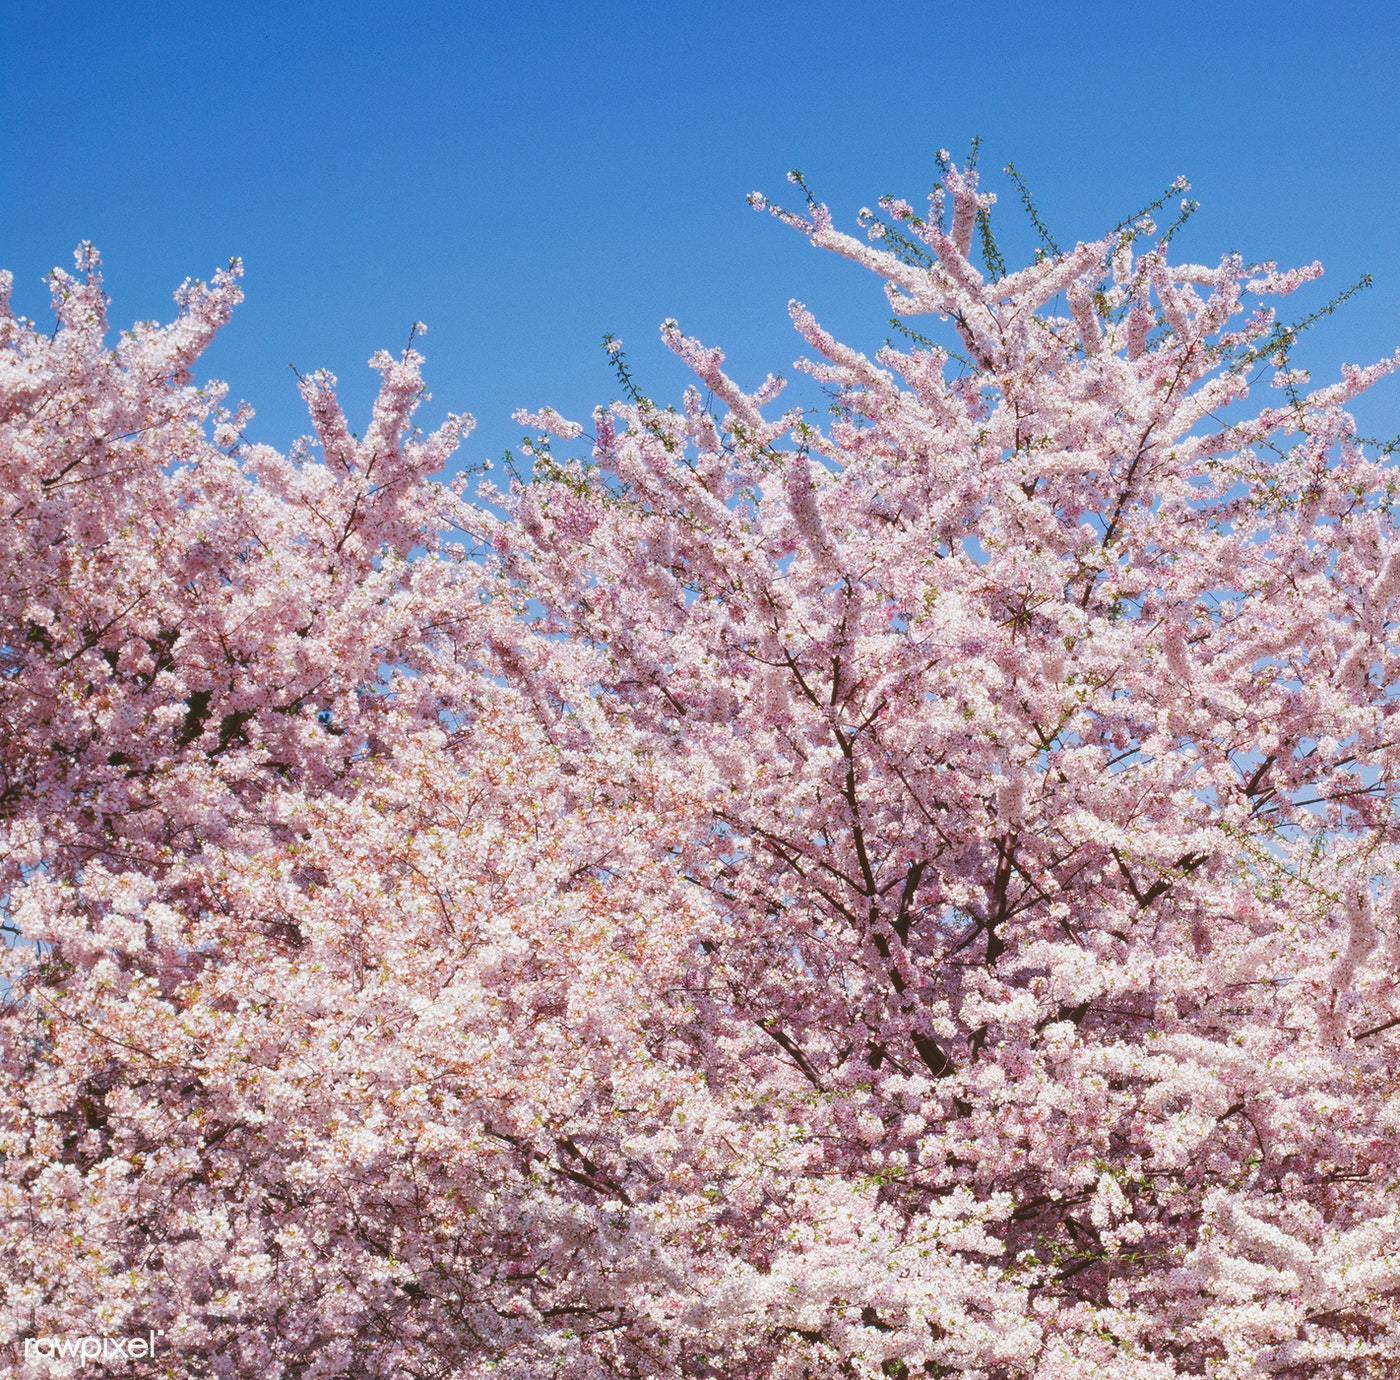 Cherry blossoms in front of the Washington Monument in Washington, D.C. Original image from Carol M. Highsmith's...